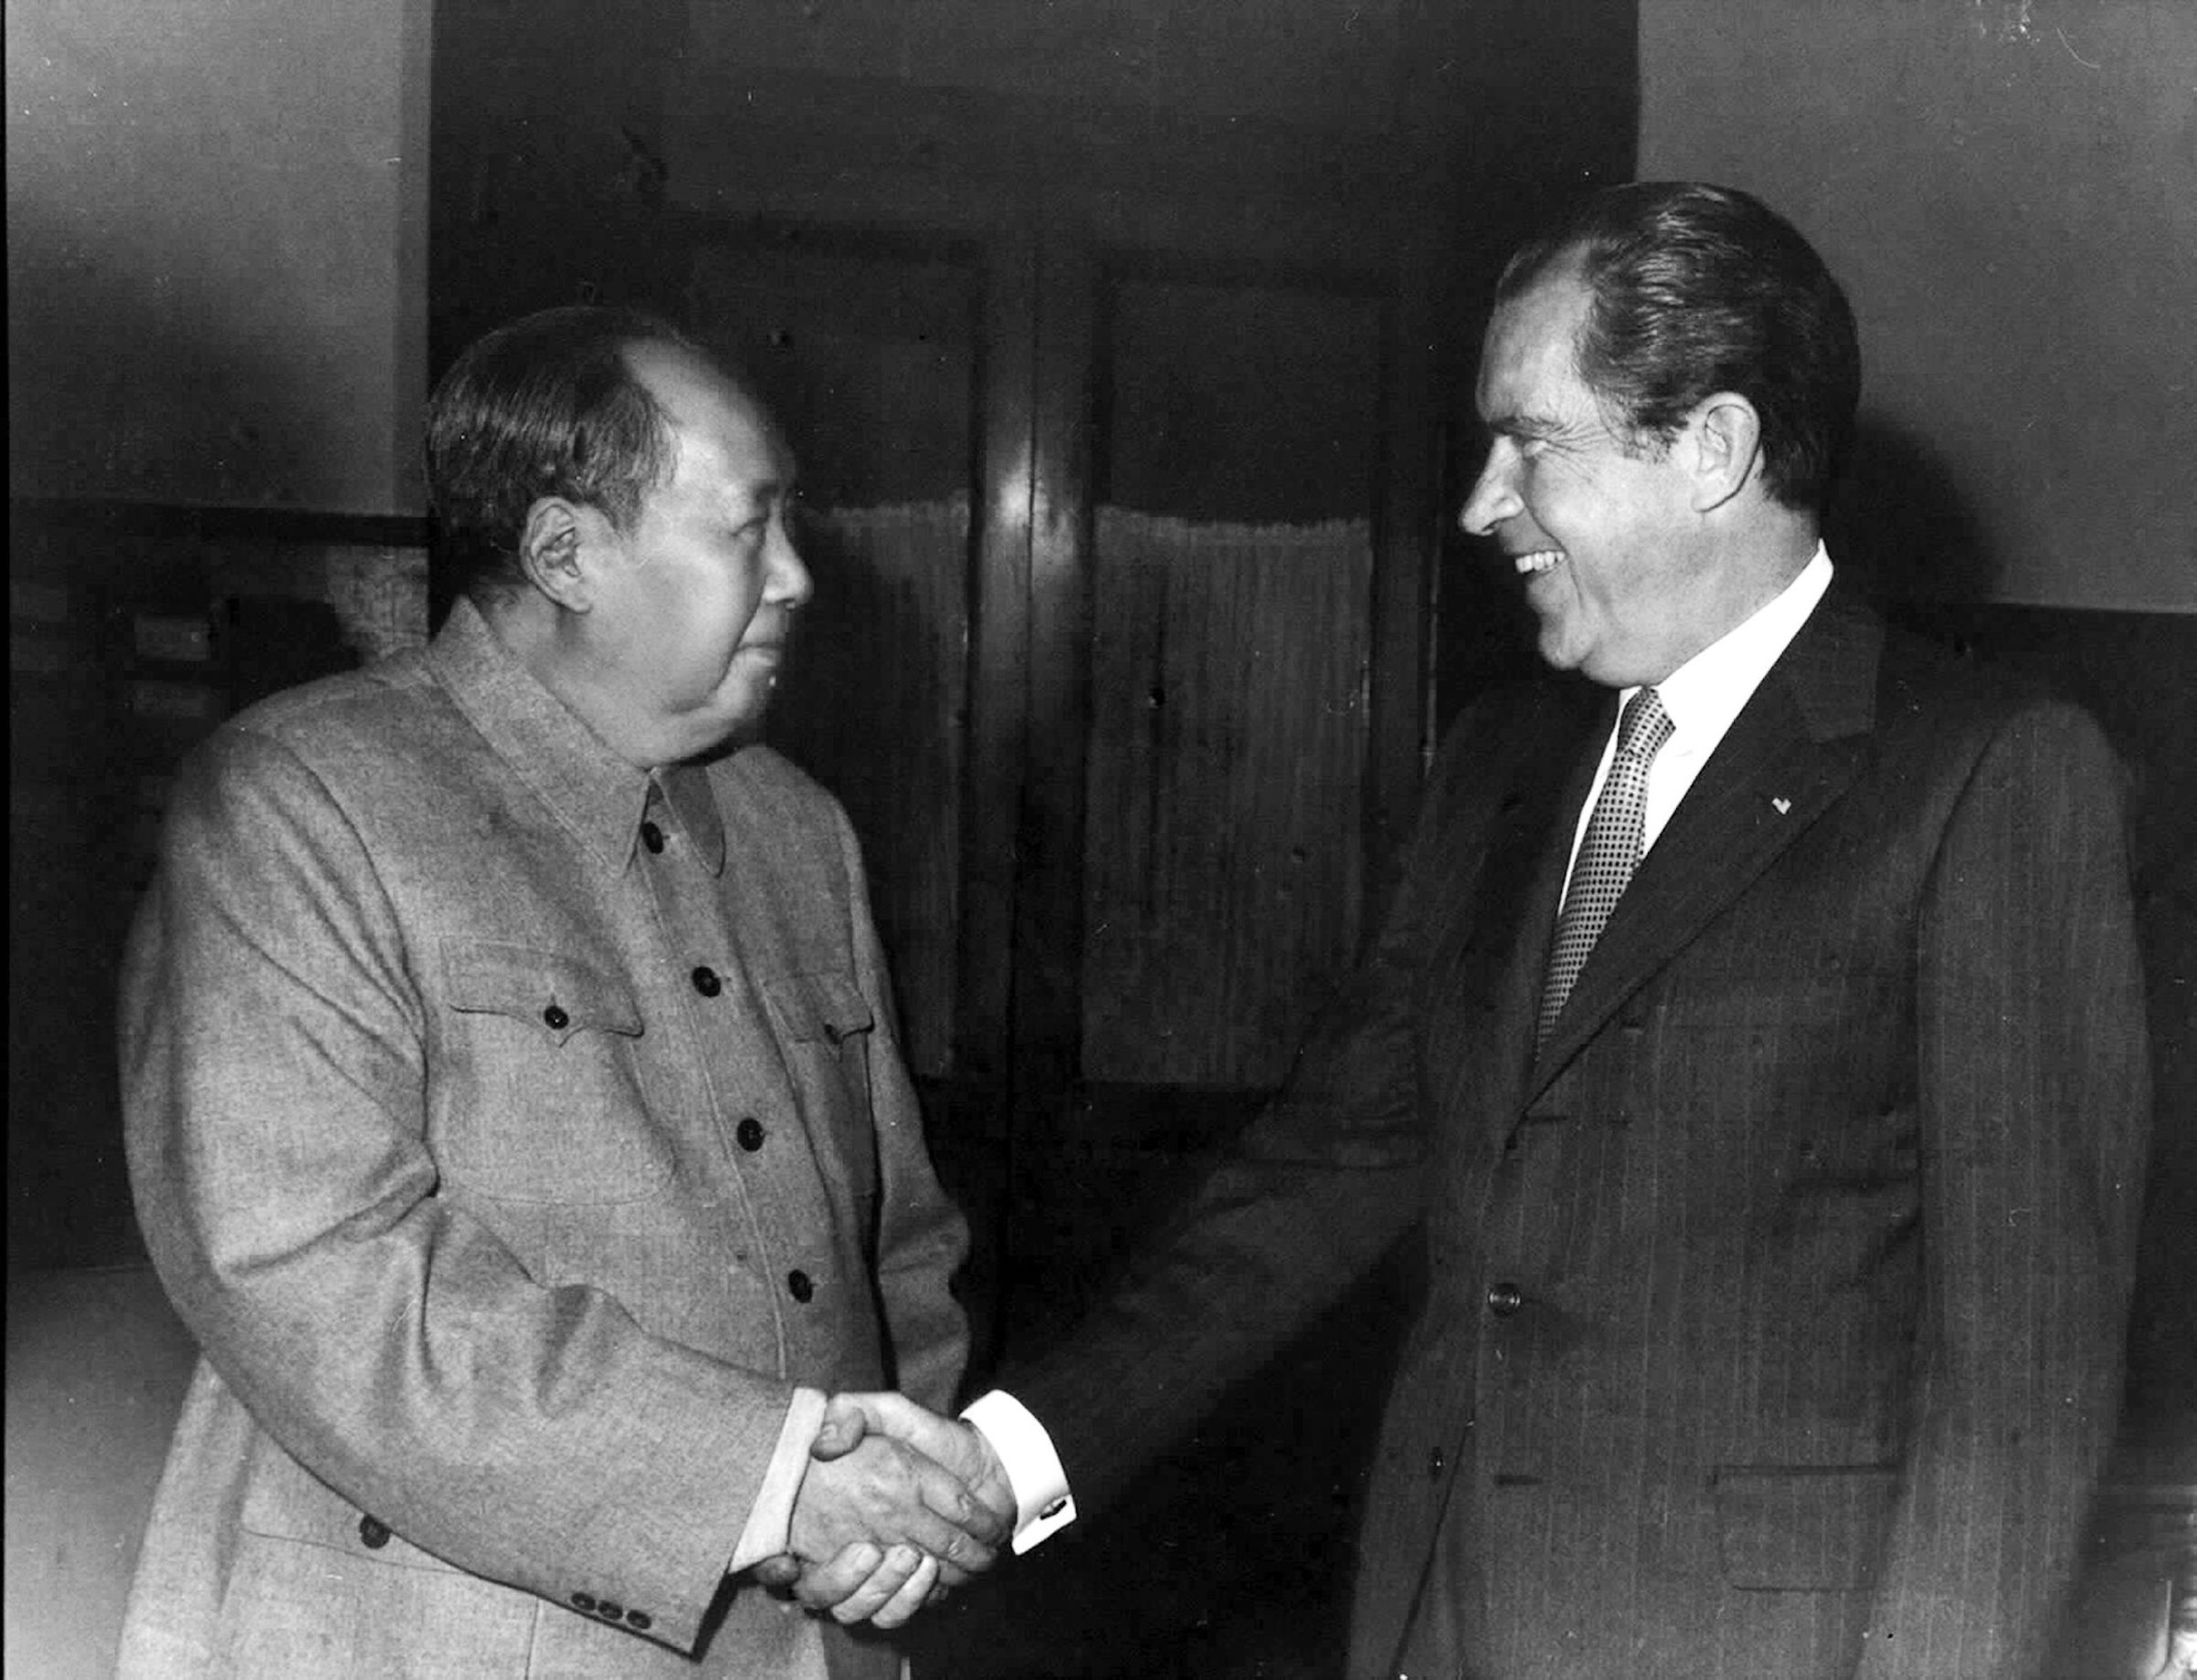 Chairman Mao Zedong meets U.S. President Nixon in Beijing on Feb. 21, 1972.